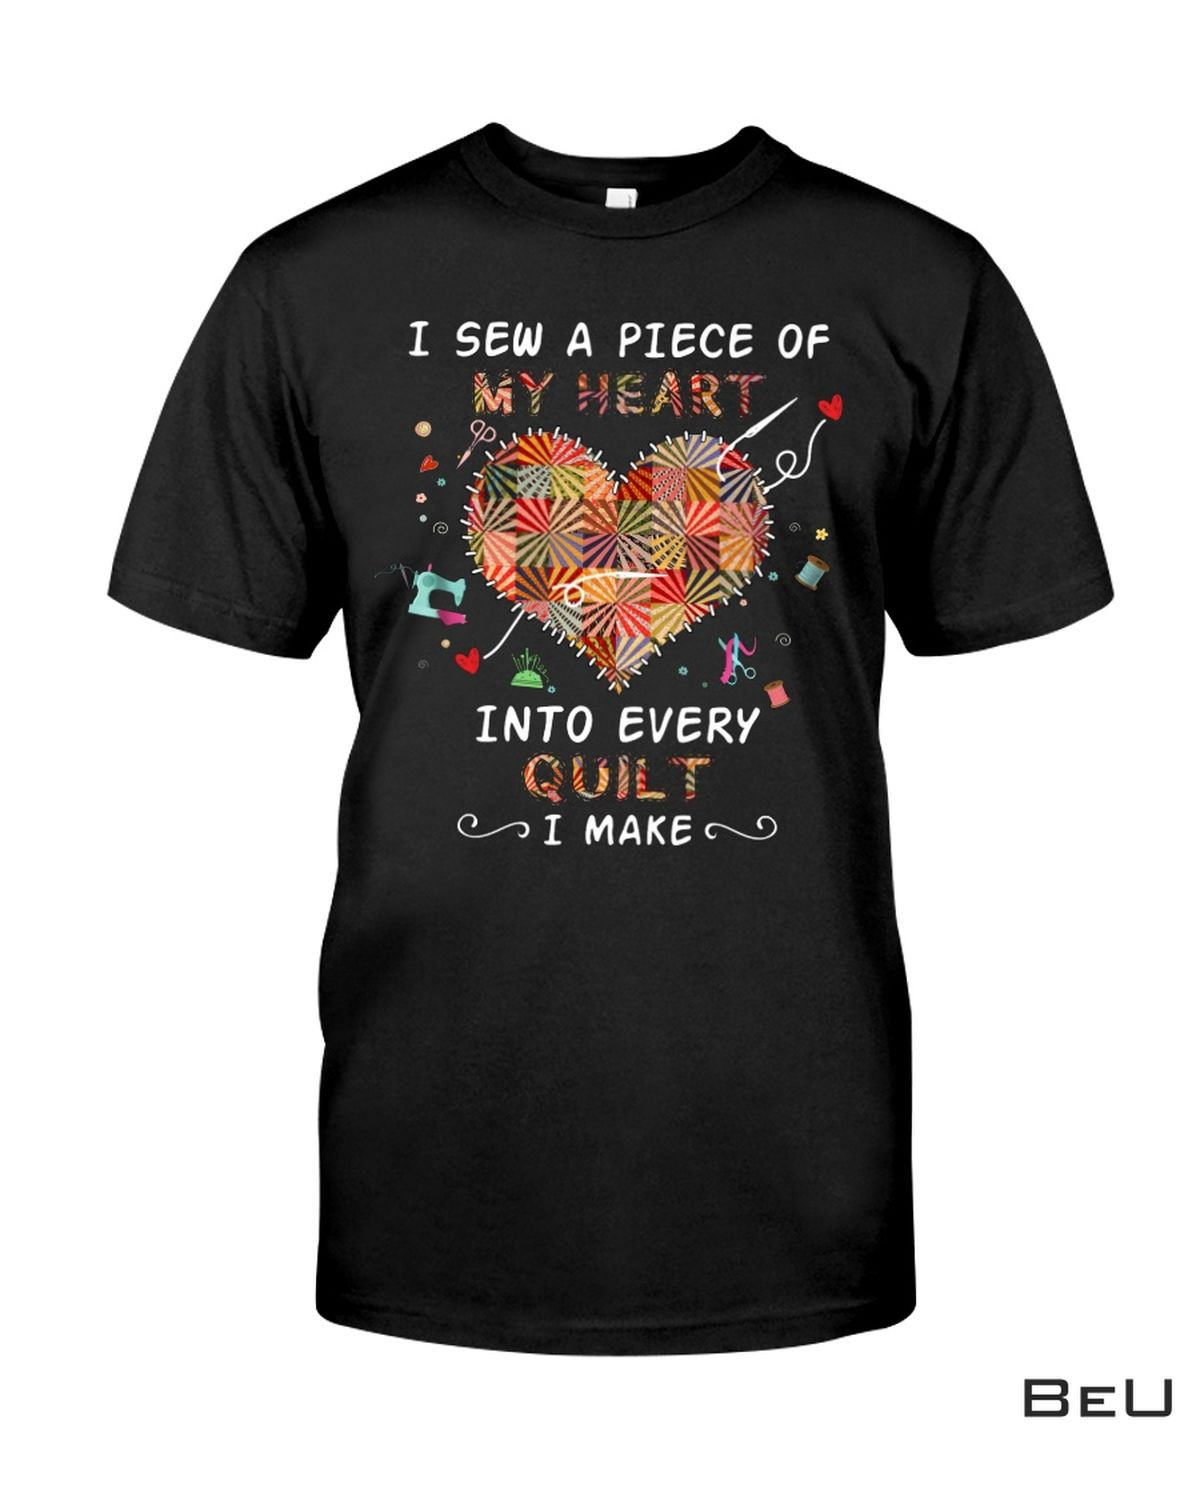 I Sew A Piece Of My Heart Into Every Quilt I Make Shirt, hoodie, tank top